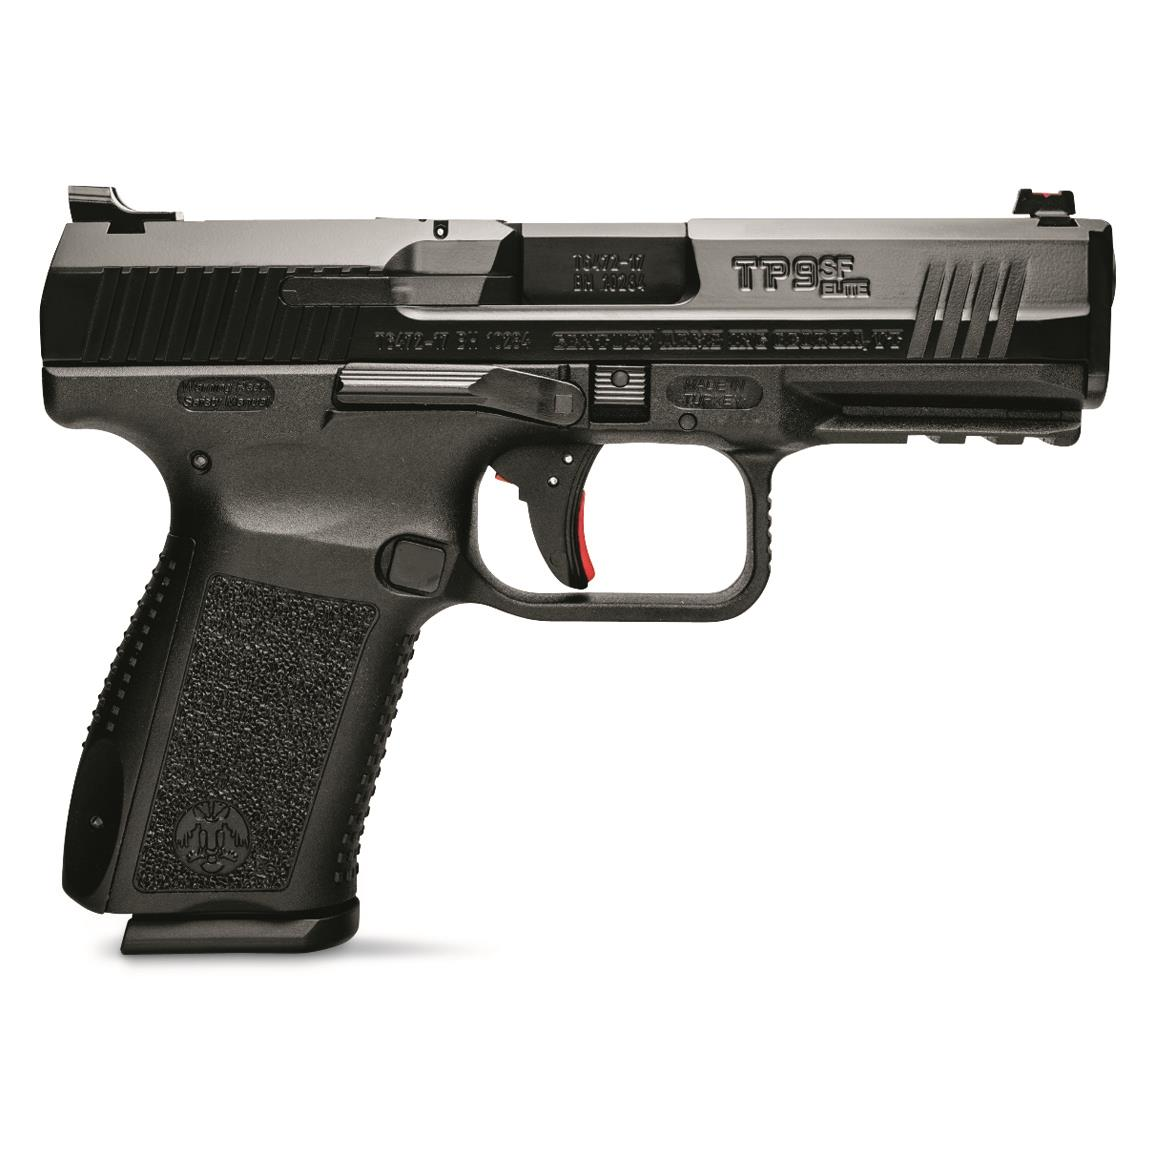 "Century Arms Canik TP9SF Elite ONE Series, Semi-Automatic, 9mm, 4.19"" Barrel, 15+1 Rounds"